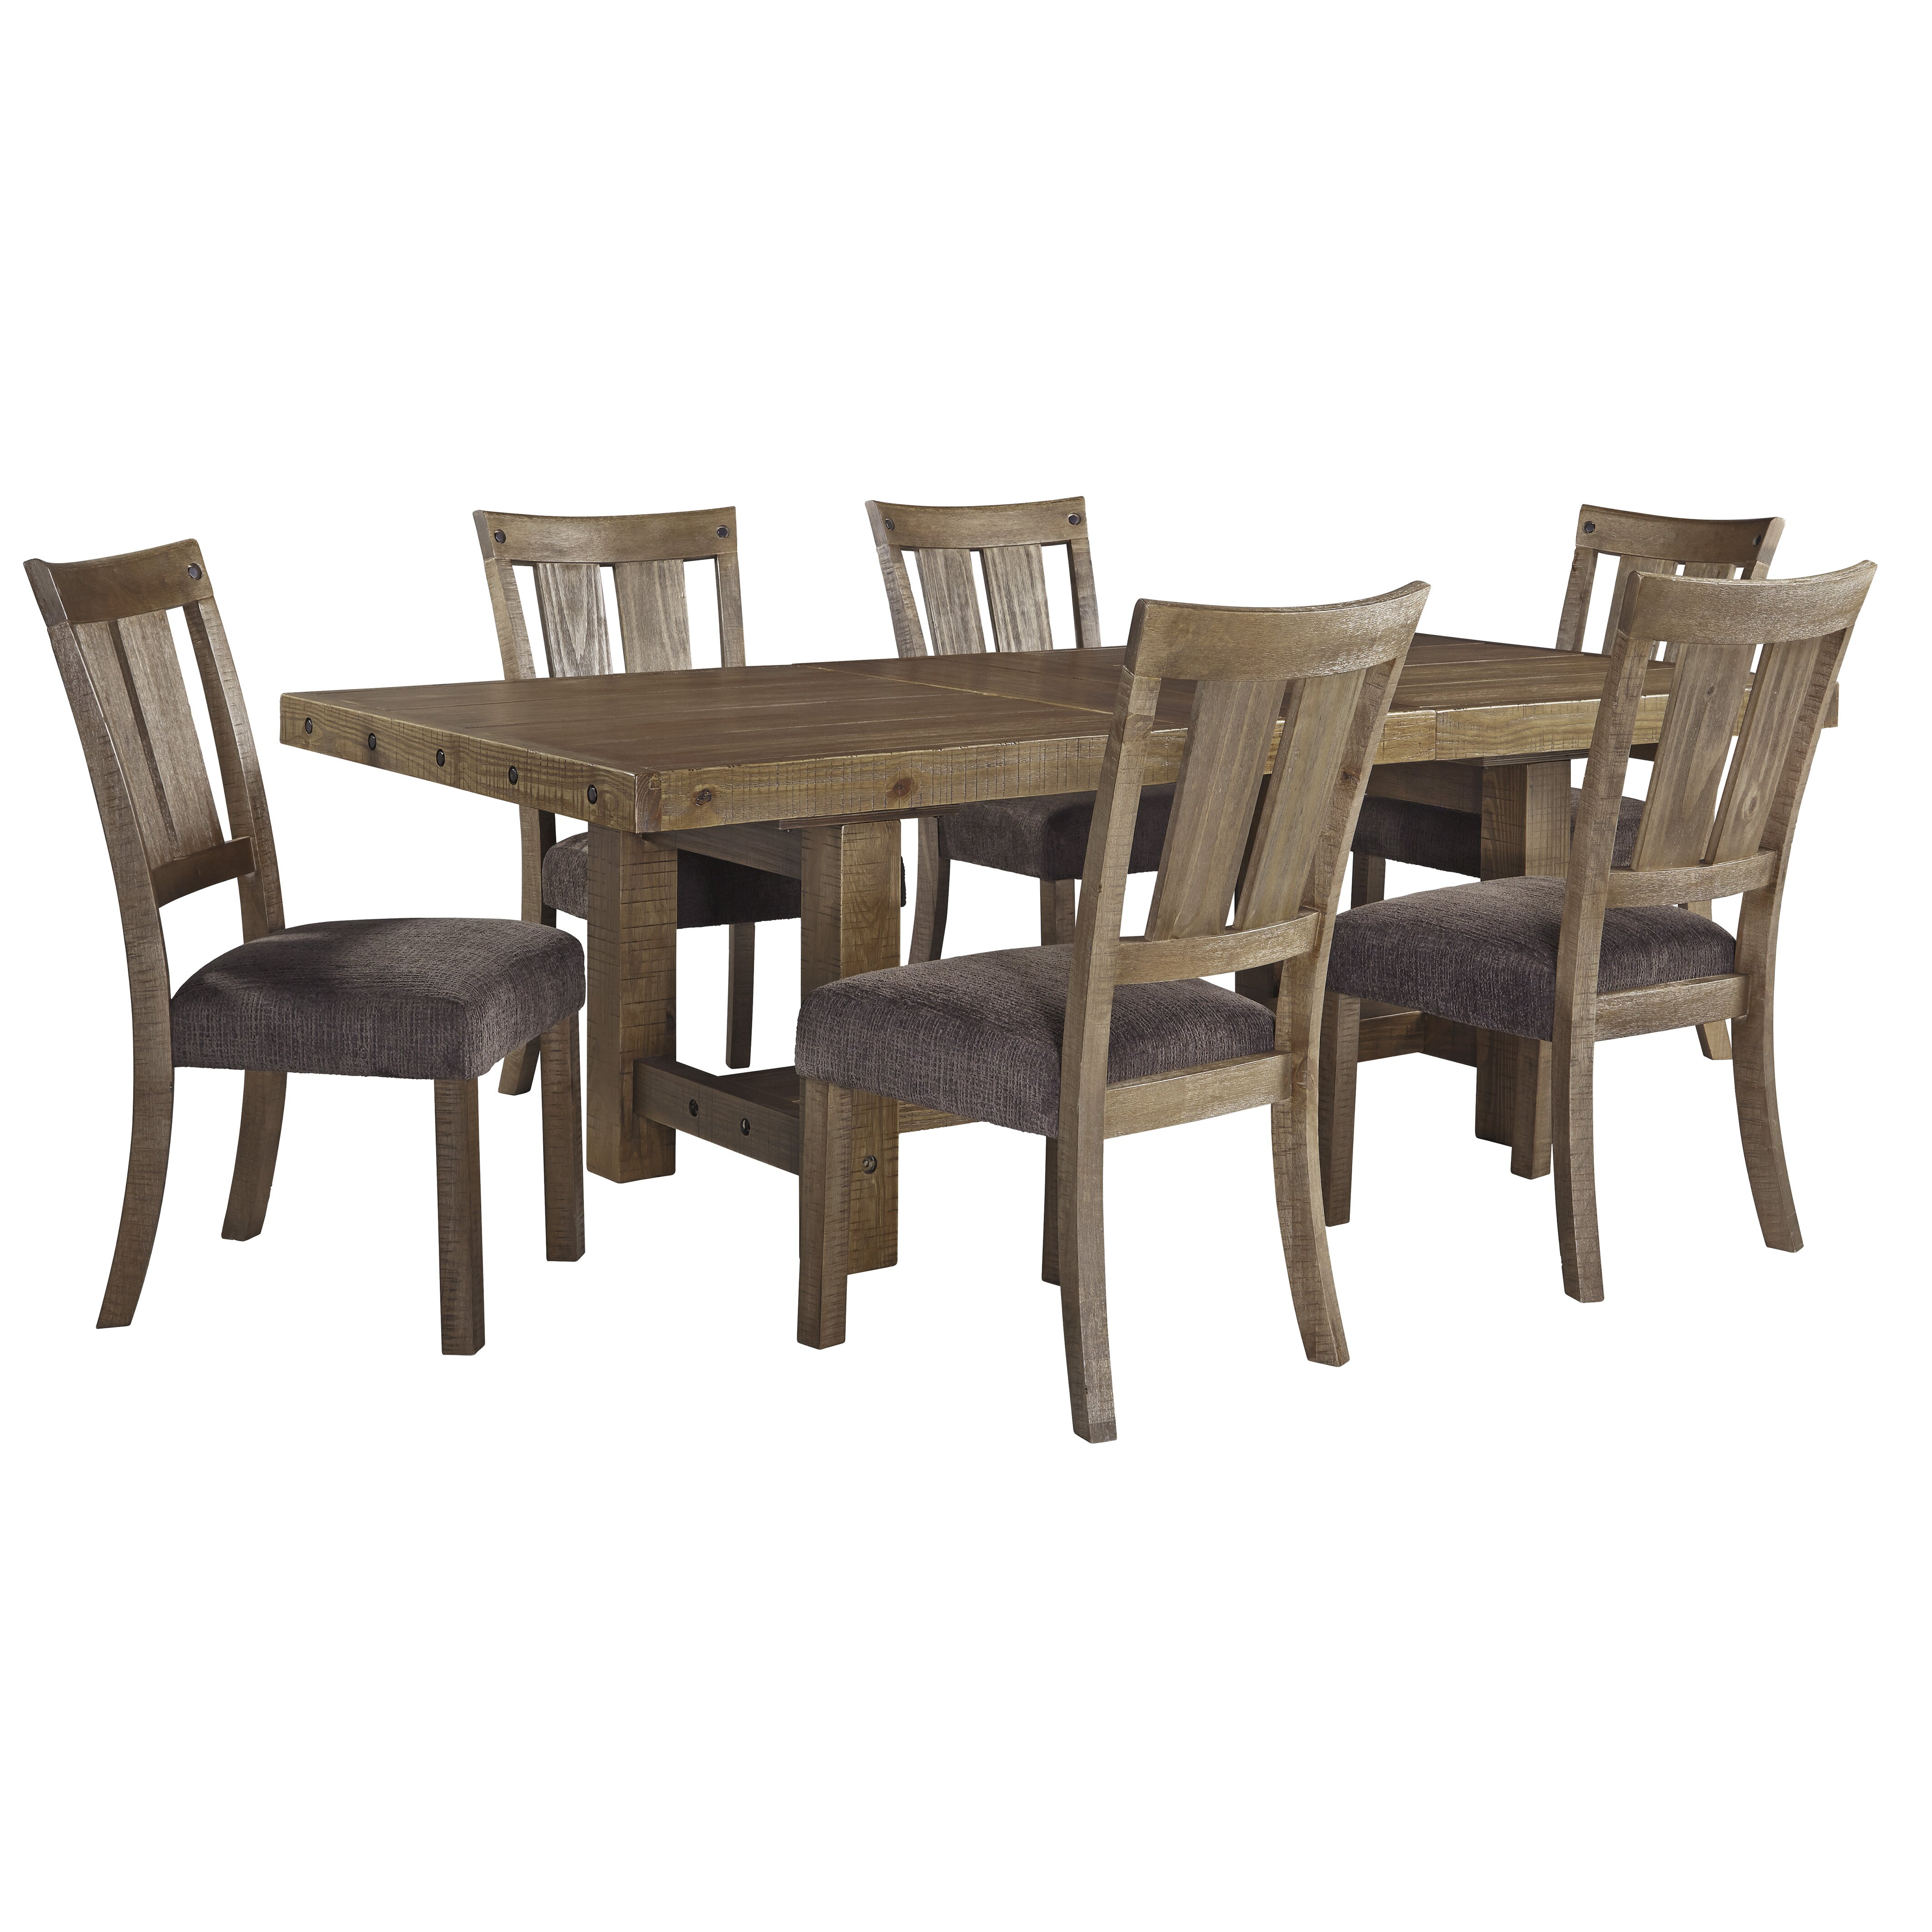 Ashley Dining Table: Signature Design By Ashley Extendable Dining Table